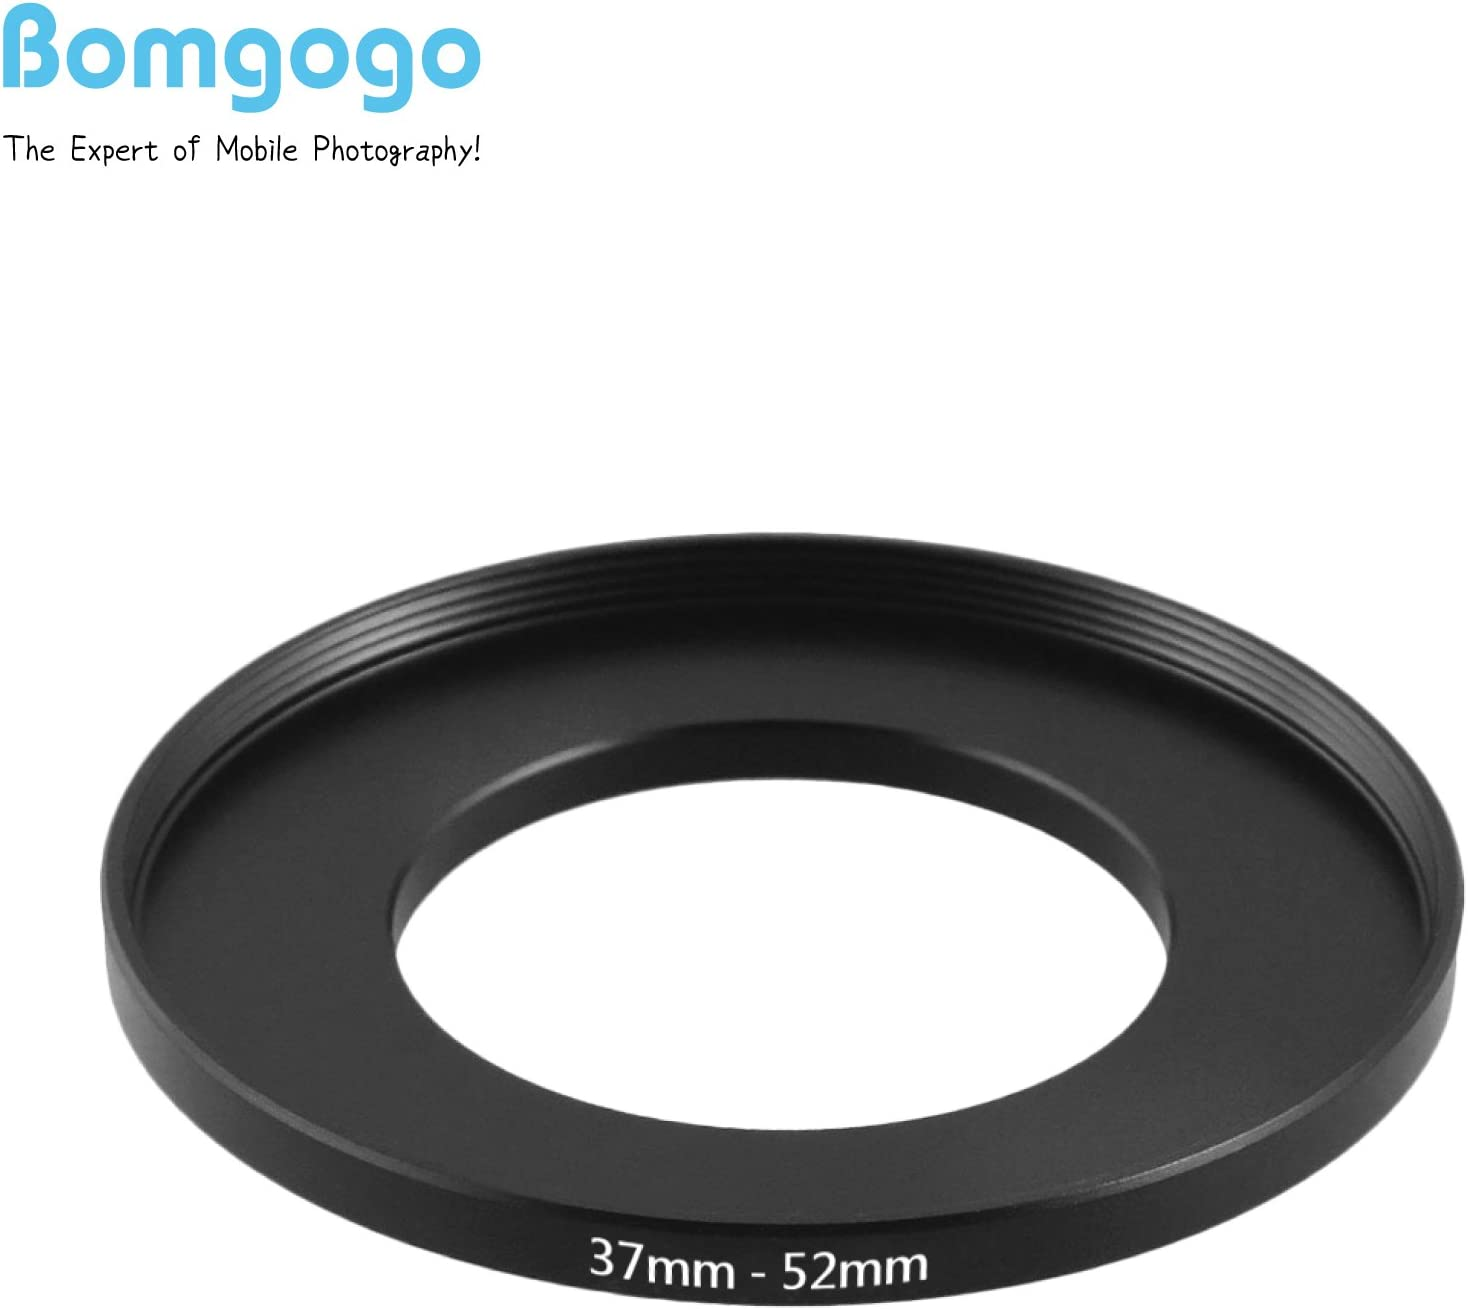 Bomgogo Step-up Adapter Ring 37mm to 52mm